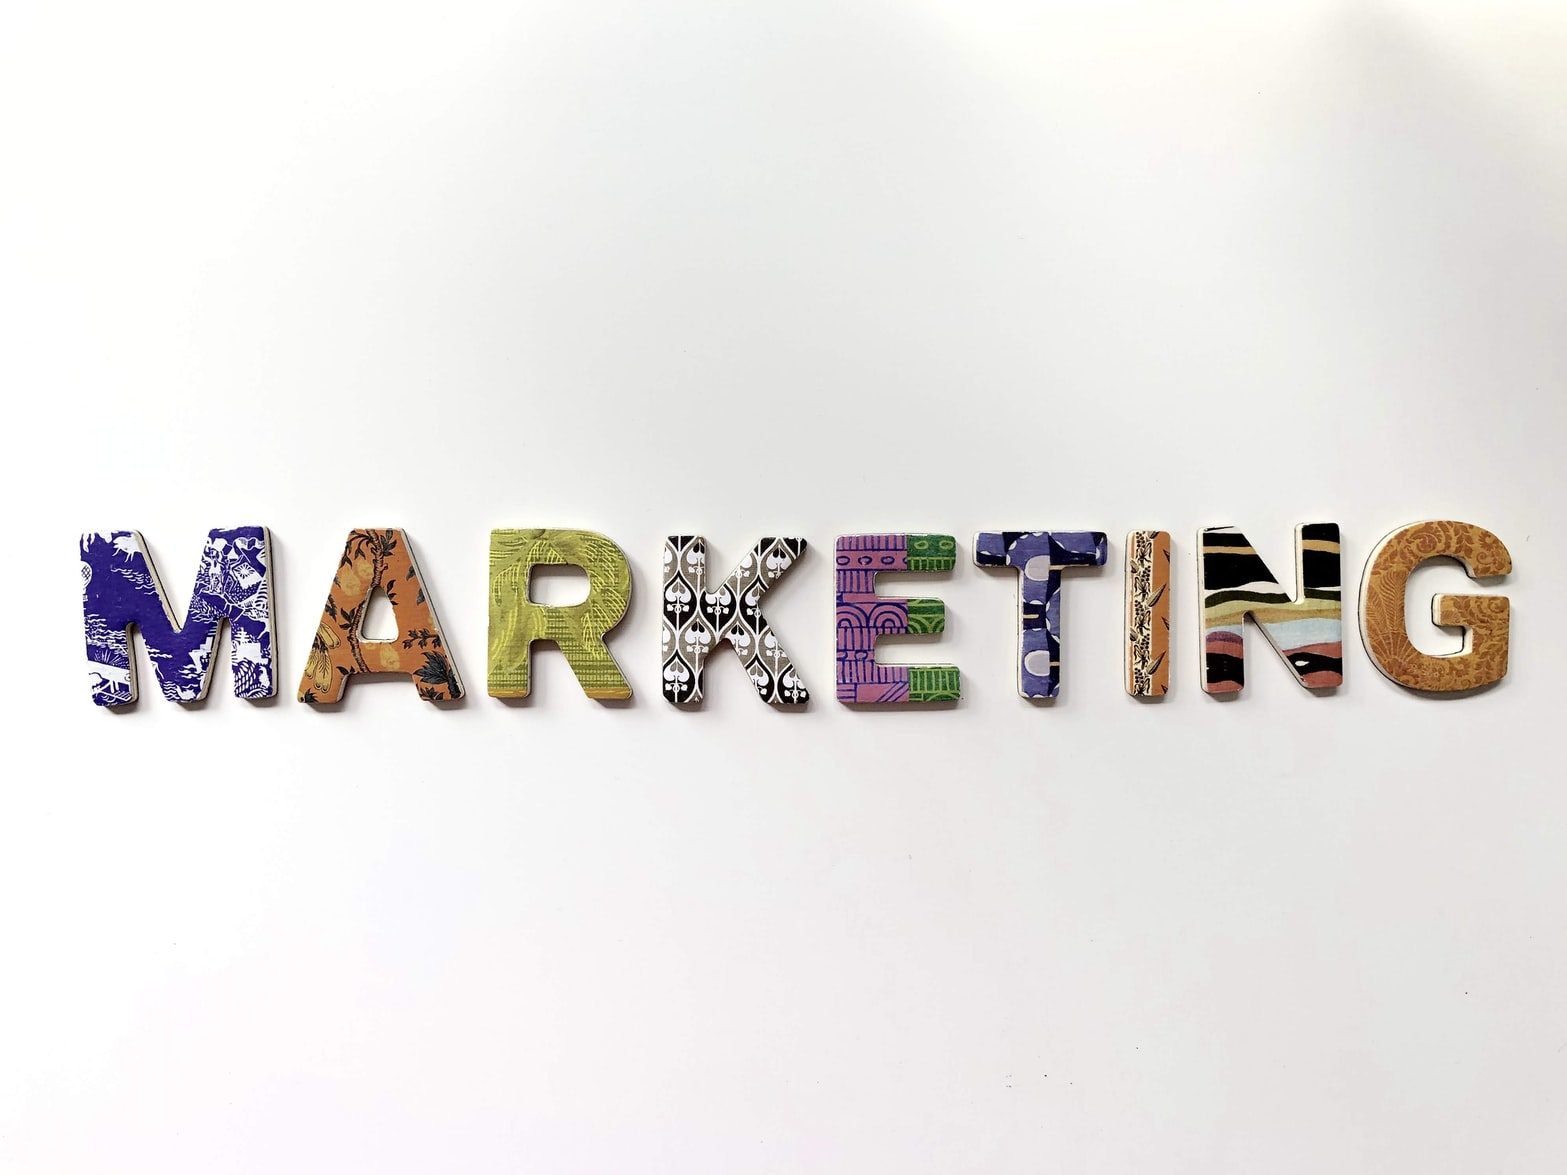 Digital marketing services in Atlanta